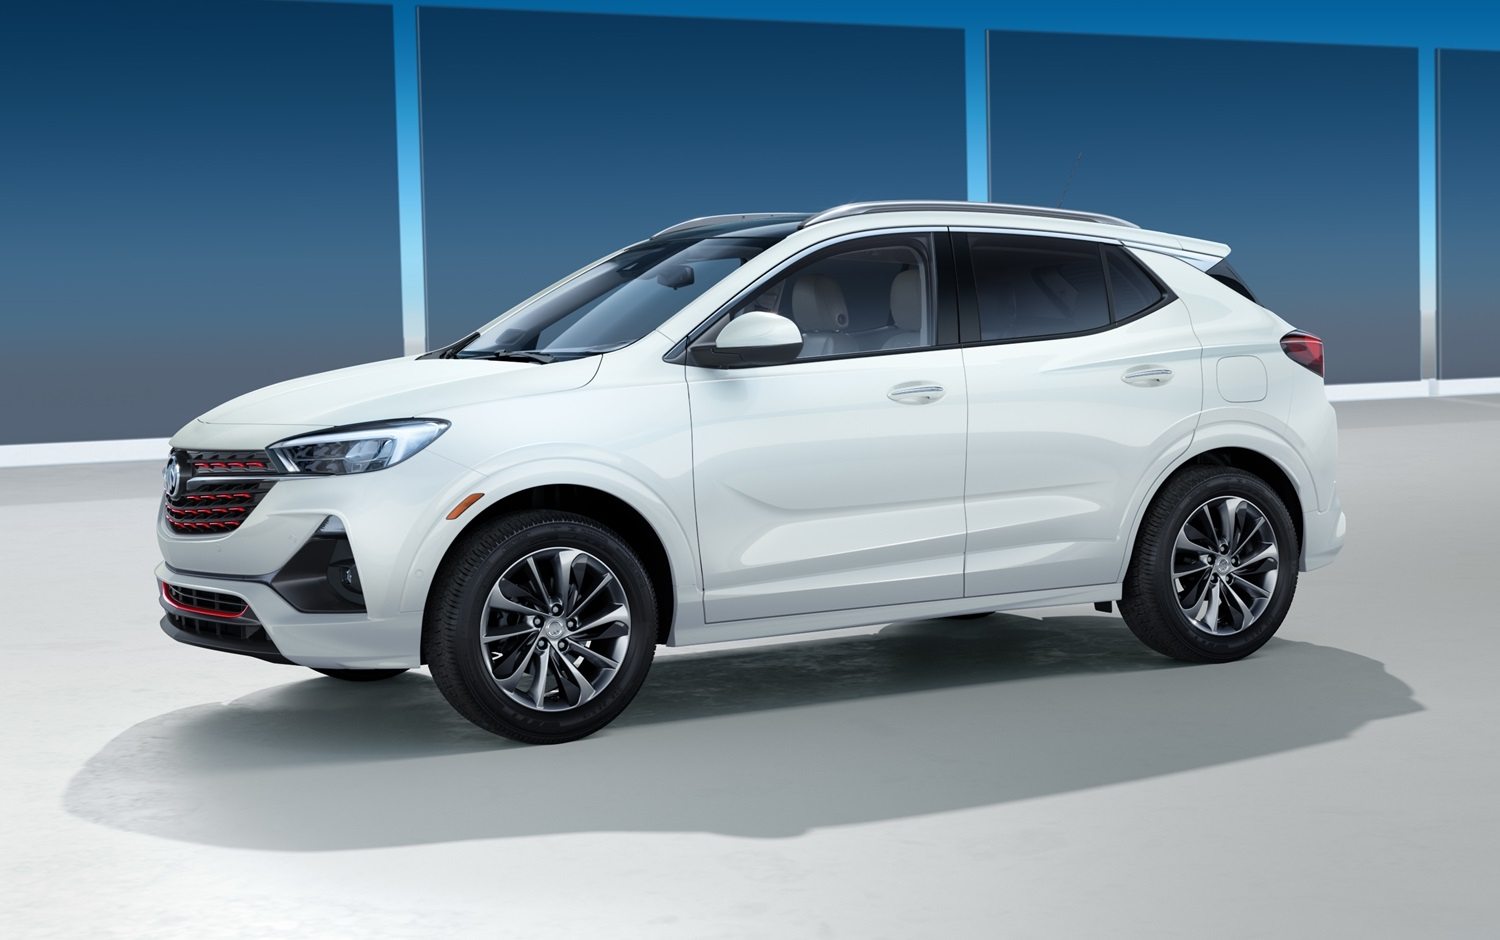 2021 Buick Encore Gx Info, Specs, Wiki | Gm Authority What Colors Does The 2021 Buick Encore Gx Come In